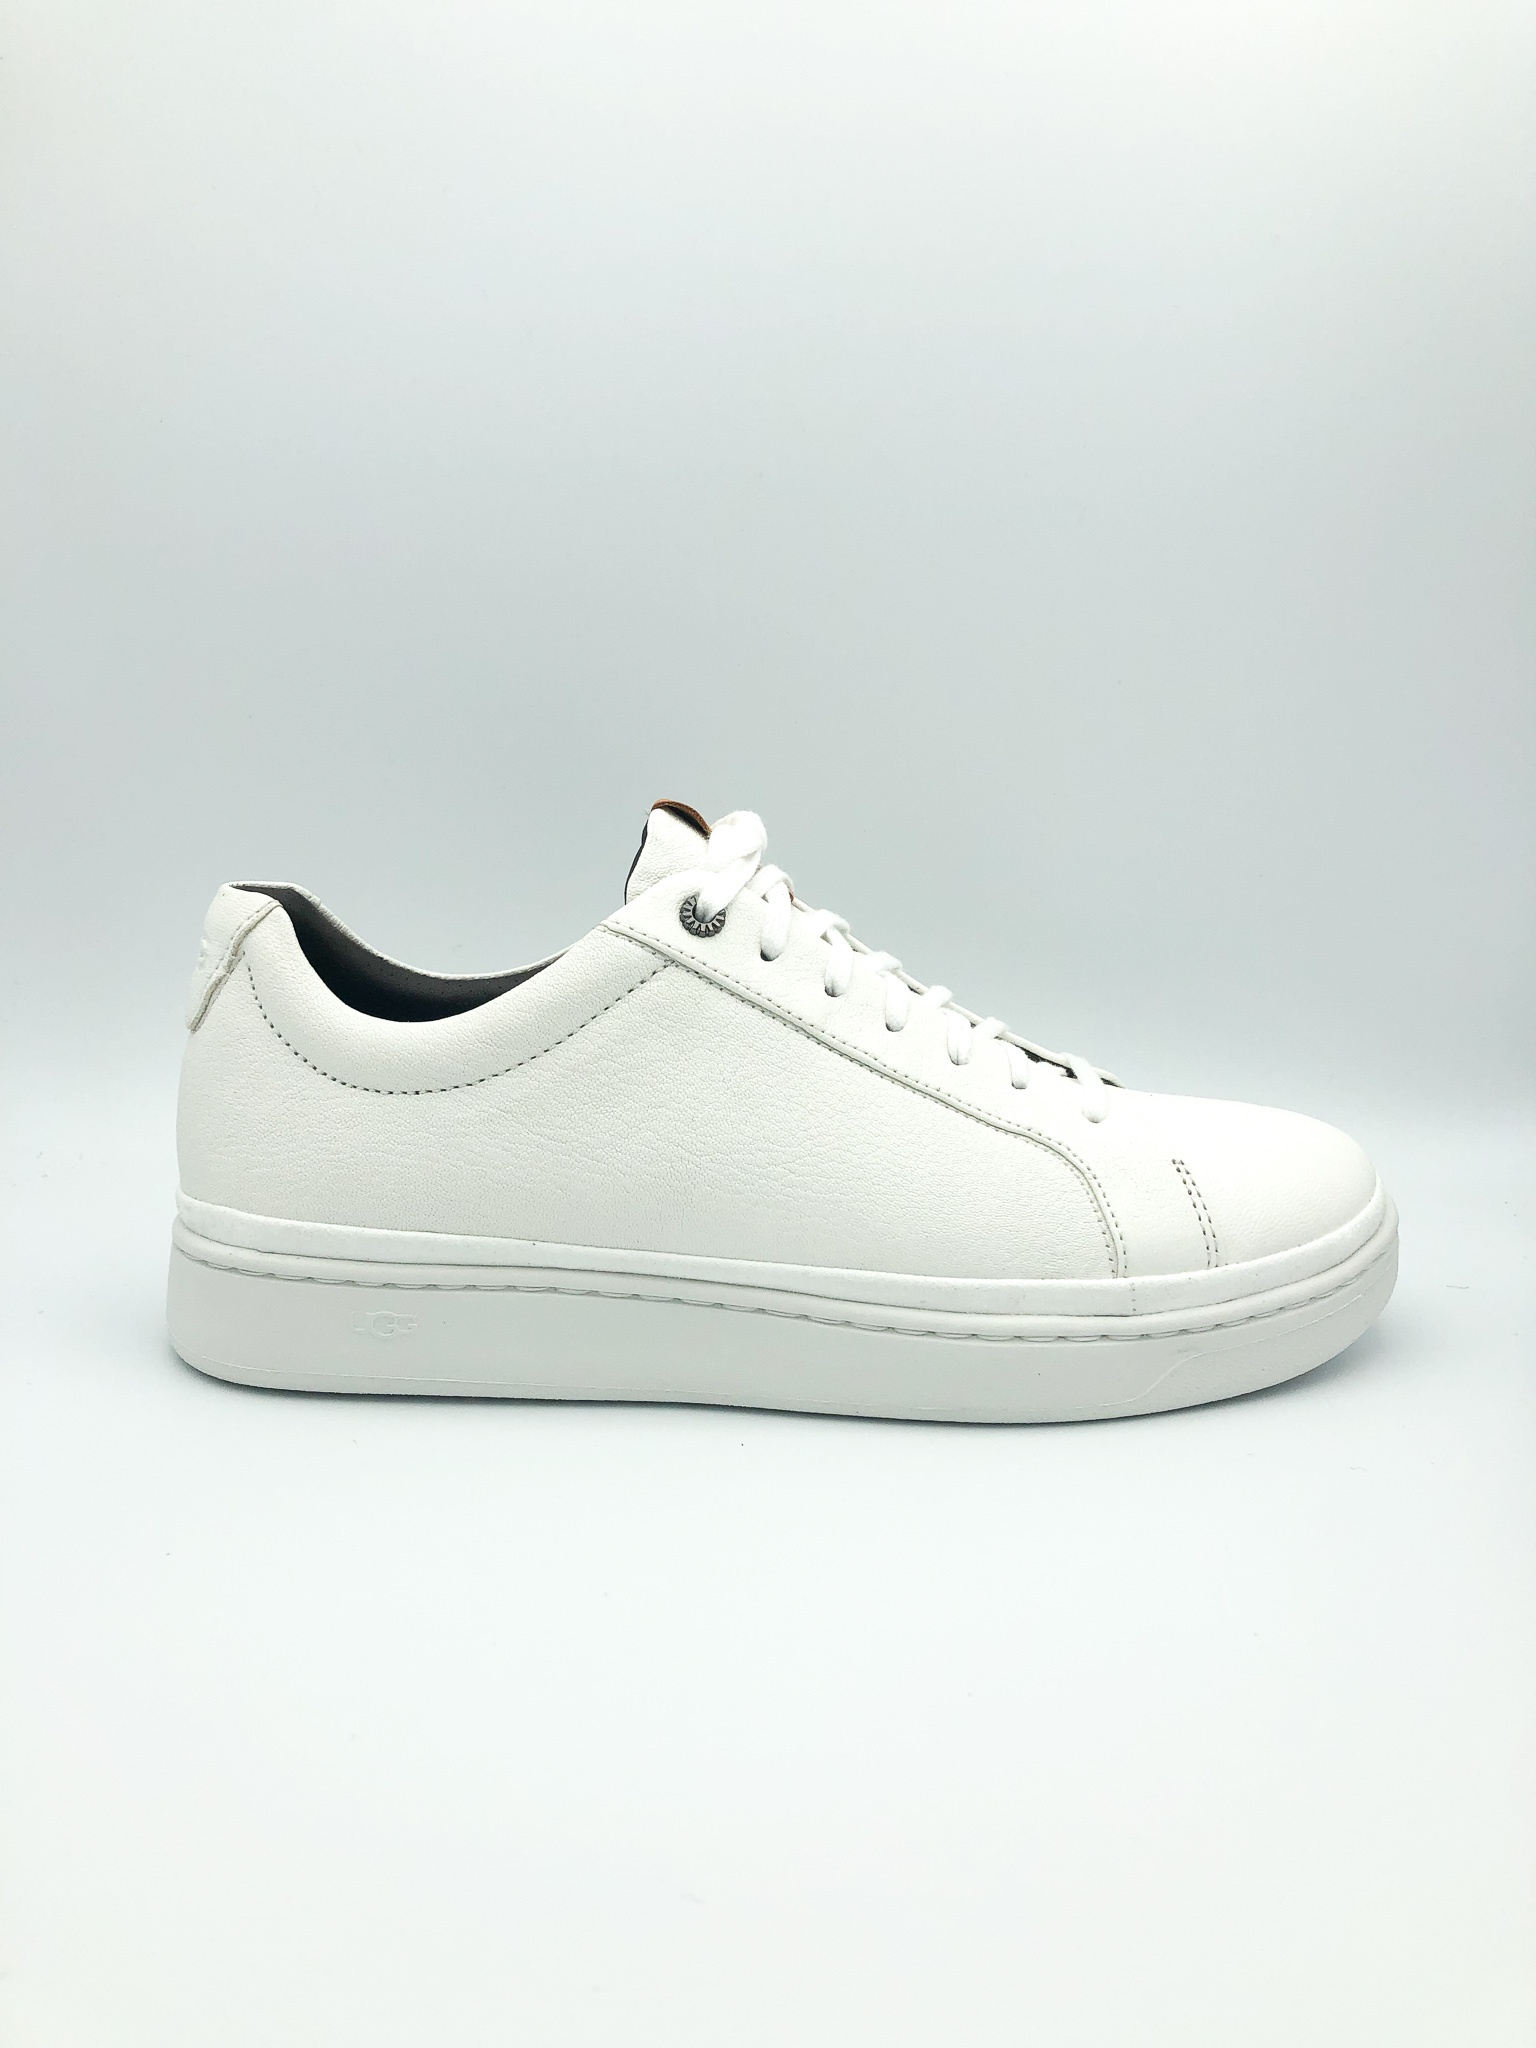 7eb28b28b52 UGG- CALI SNEAKER LOW IN WHITE